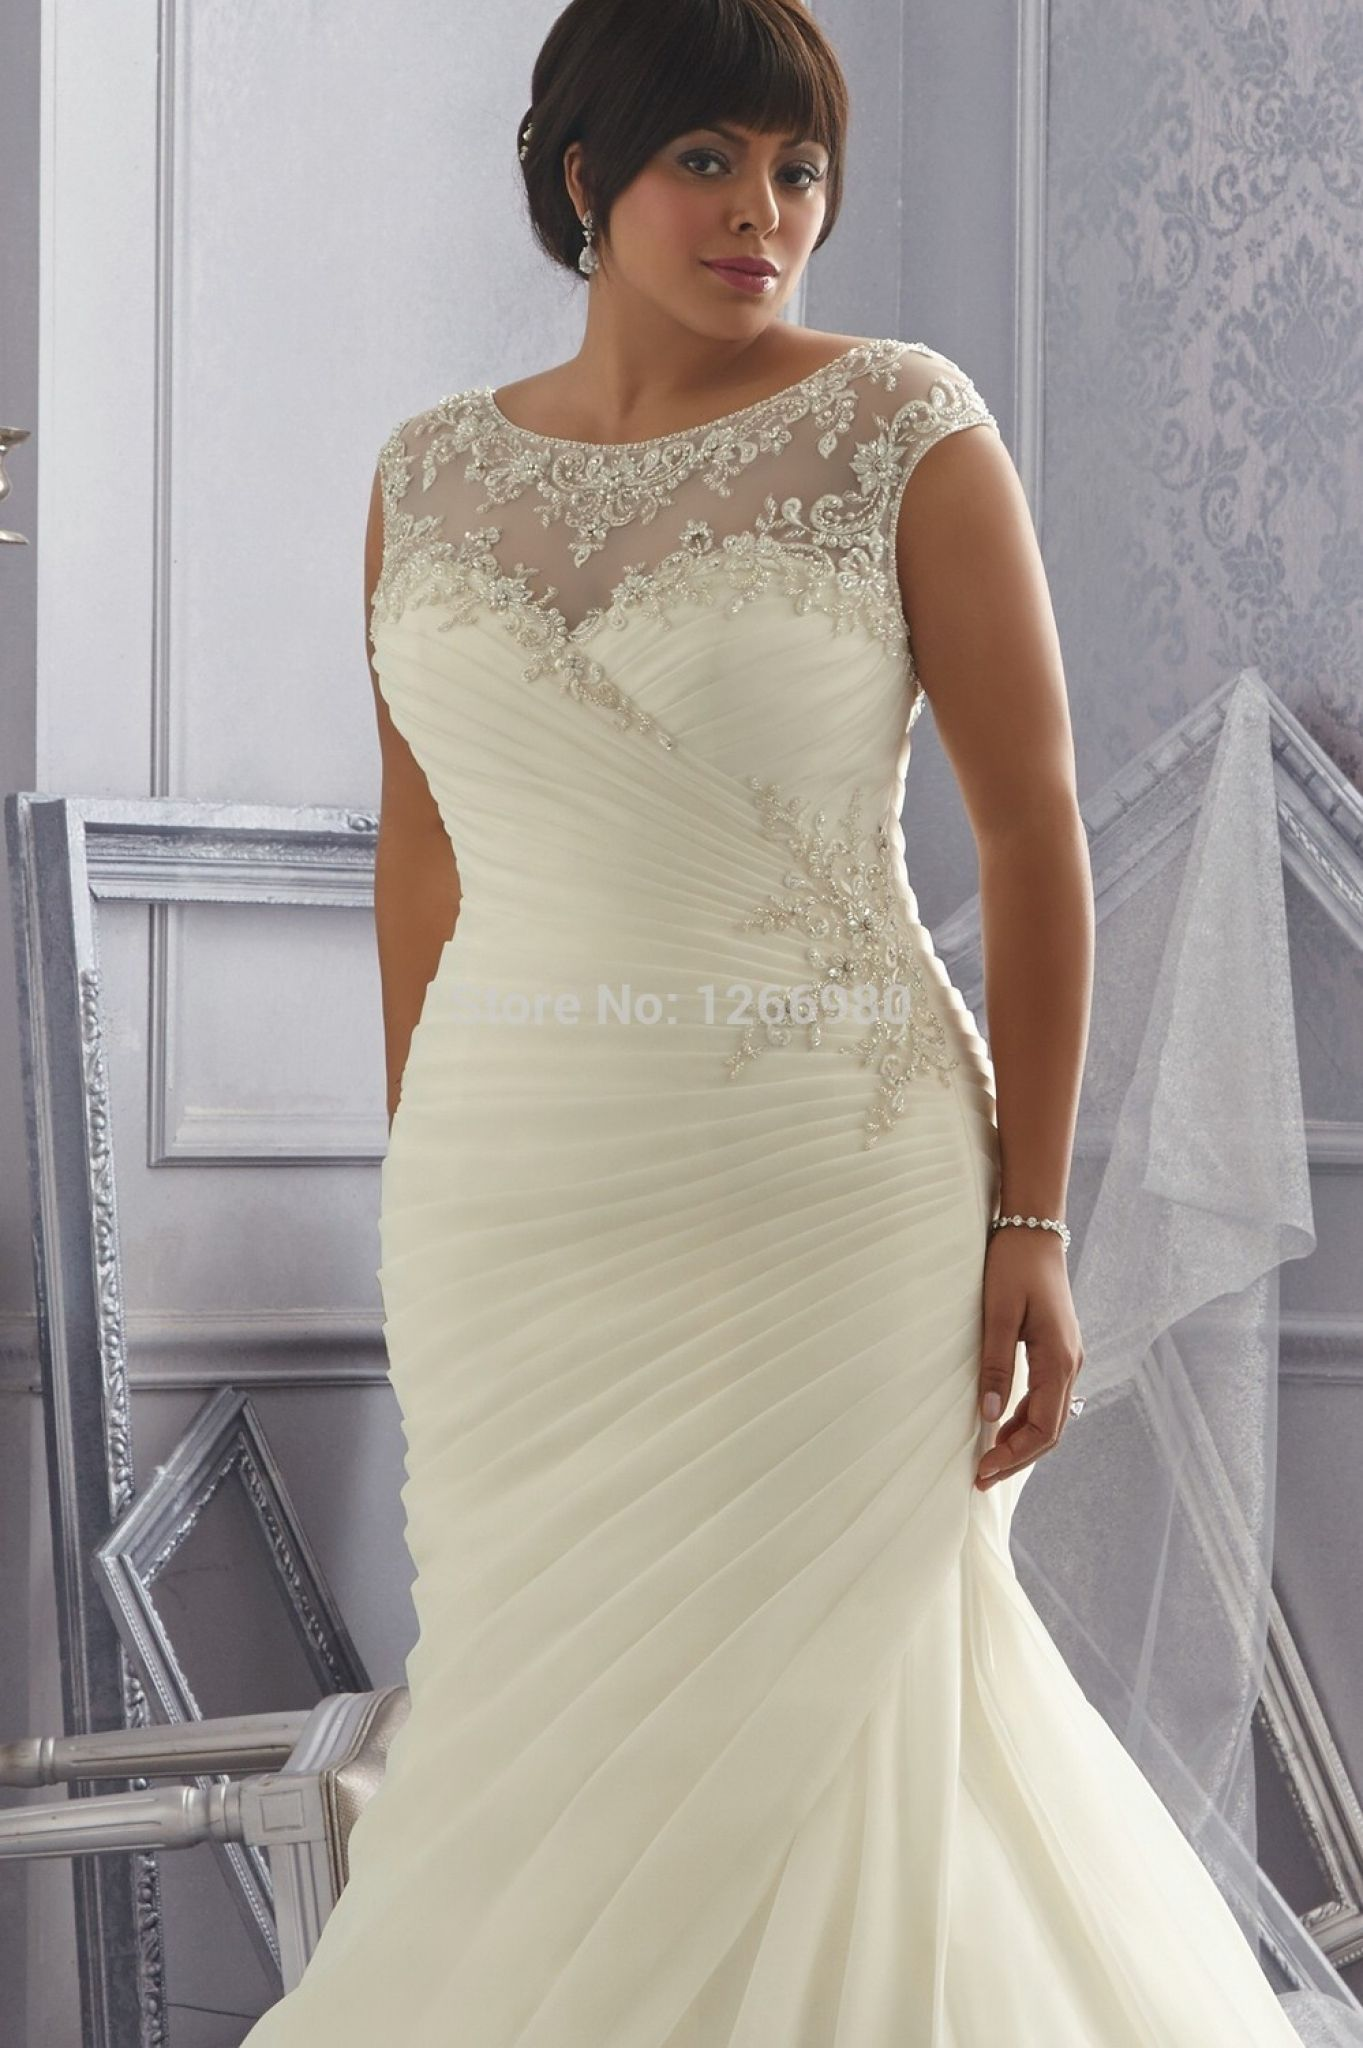 6c2b33ac54e wedding dresses for fat brides - wedding dresses for cheap Check more at  http